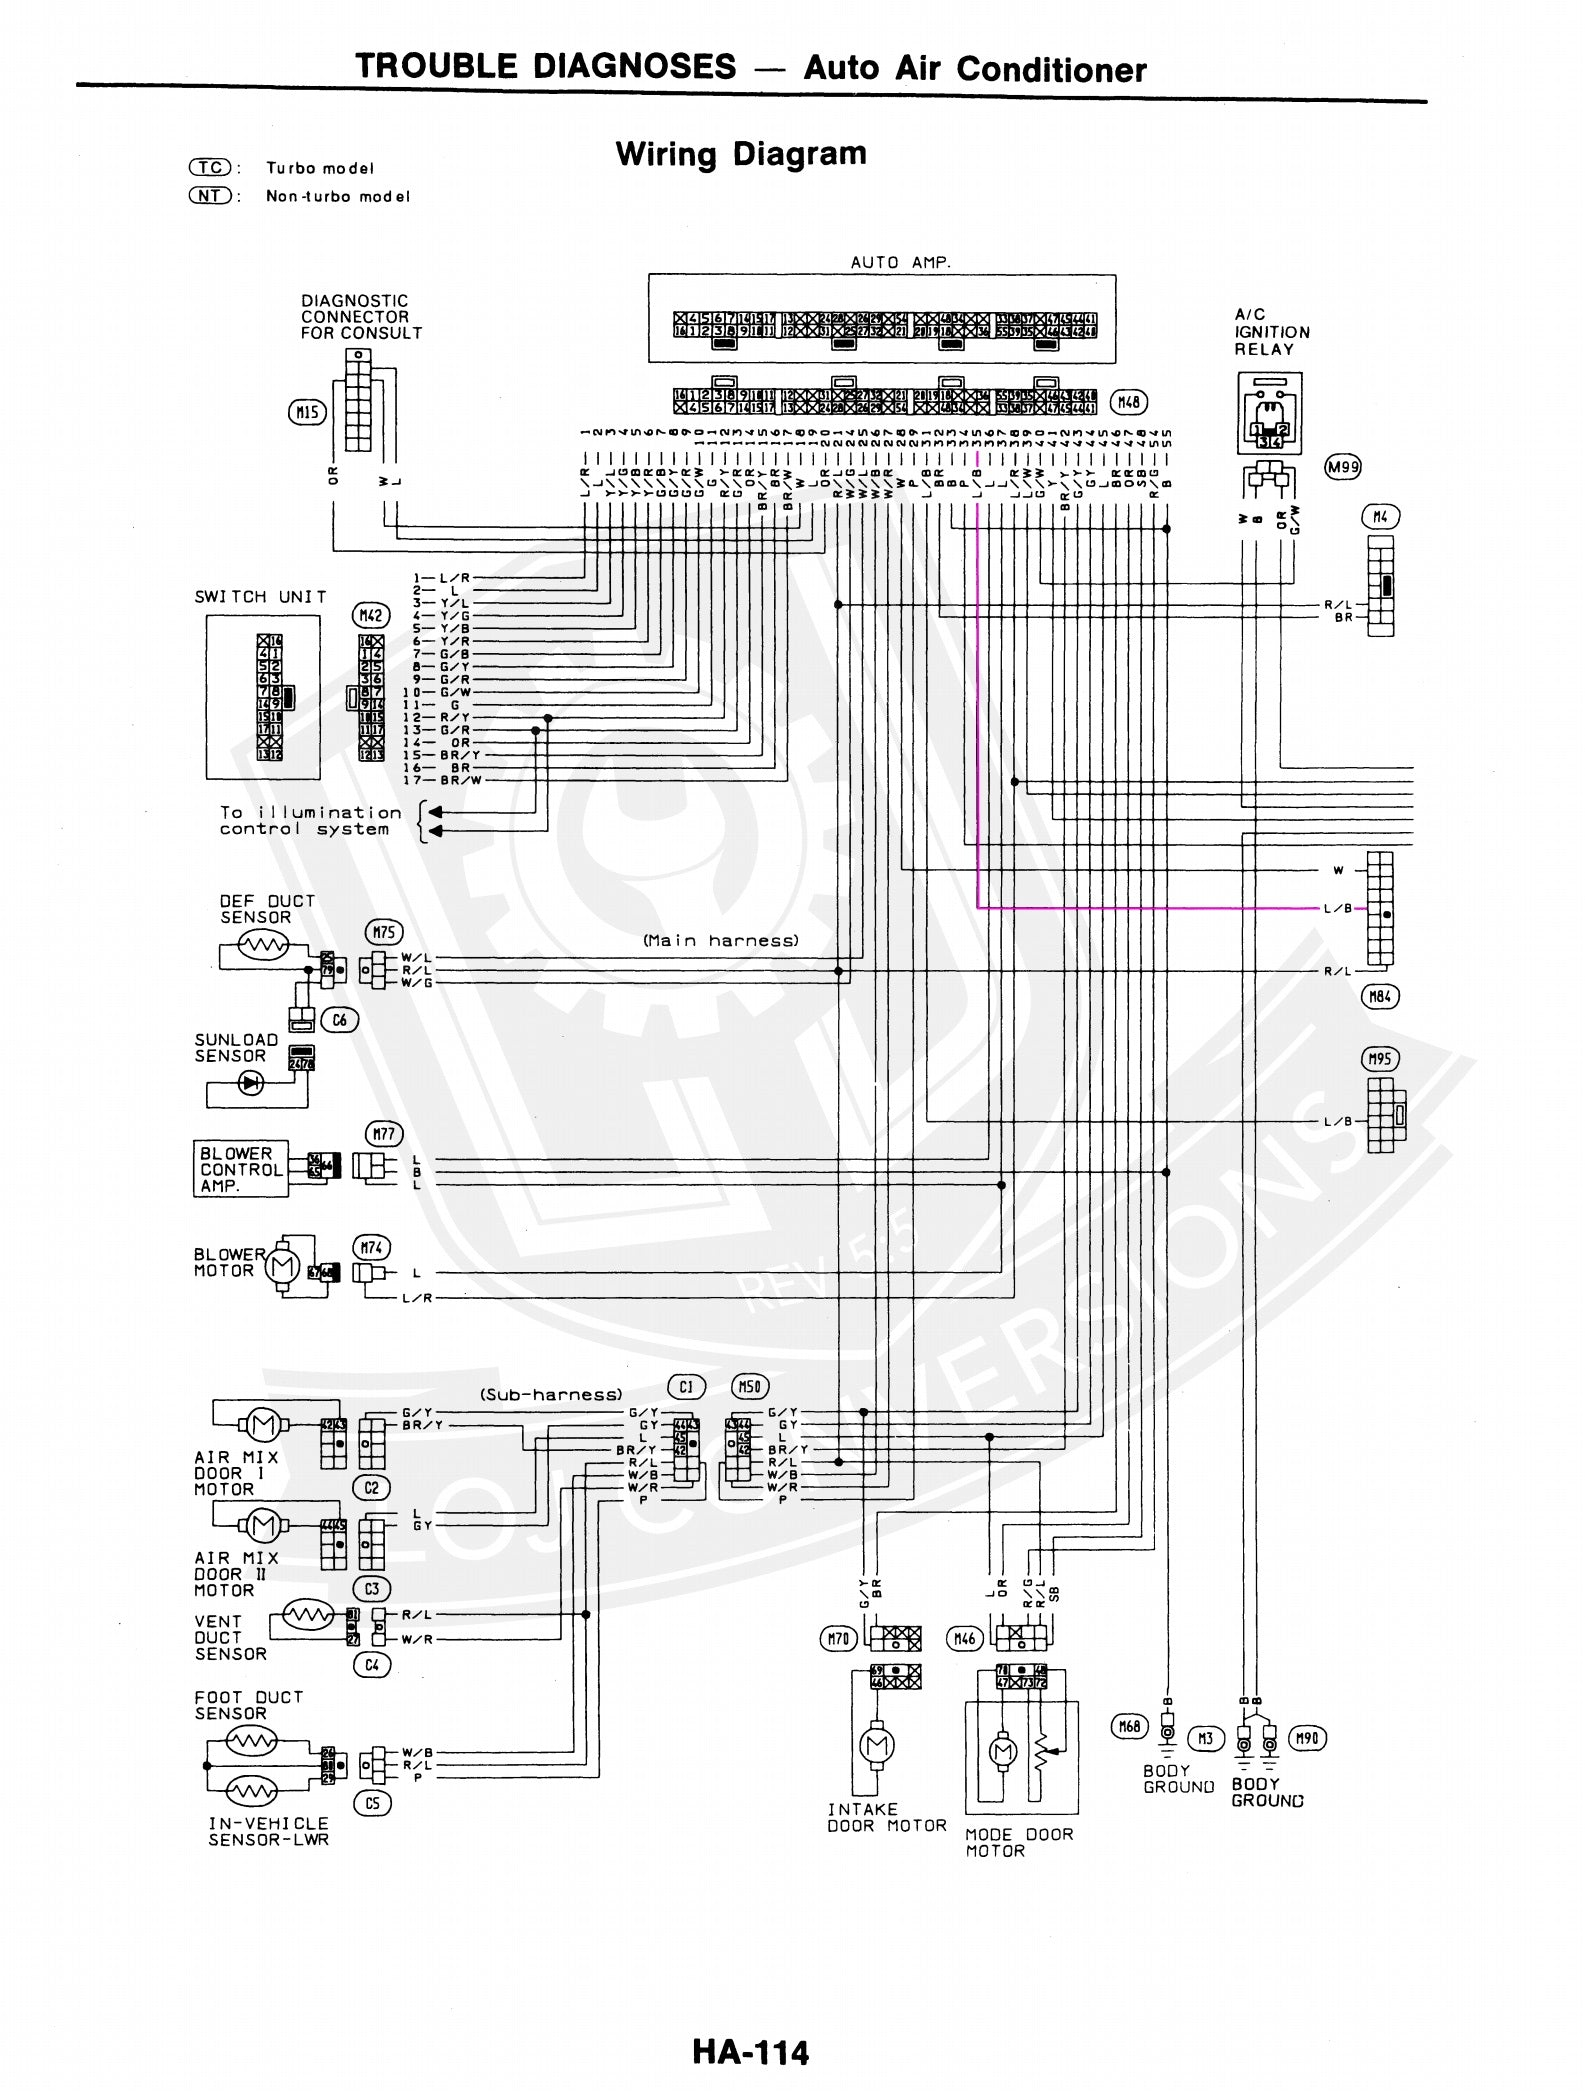 1986 nissan 300zx wiring diagram wiring library 1984 nissan 300zx wiring-diagram wiring the ac in a 300zx engine conversion loj conversions rh lojkits com 1986 nissan 300zx